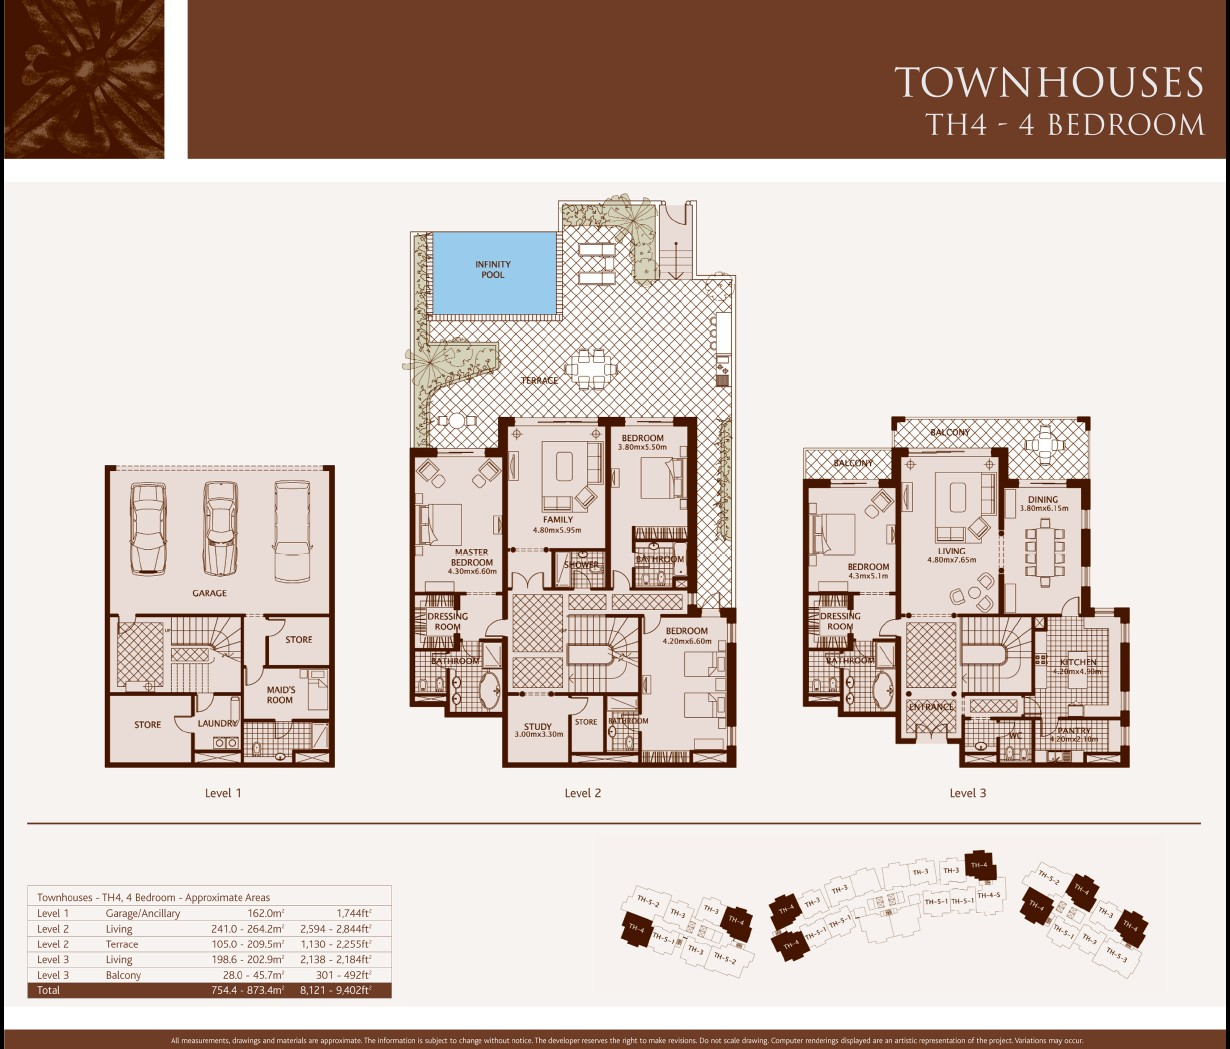 Townhouse floor plans townhouse floor plans lcxzzcom for 3 bedroom townhouse plans